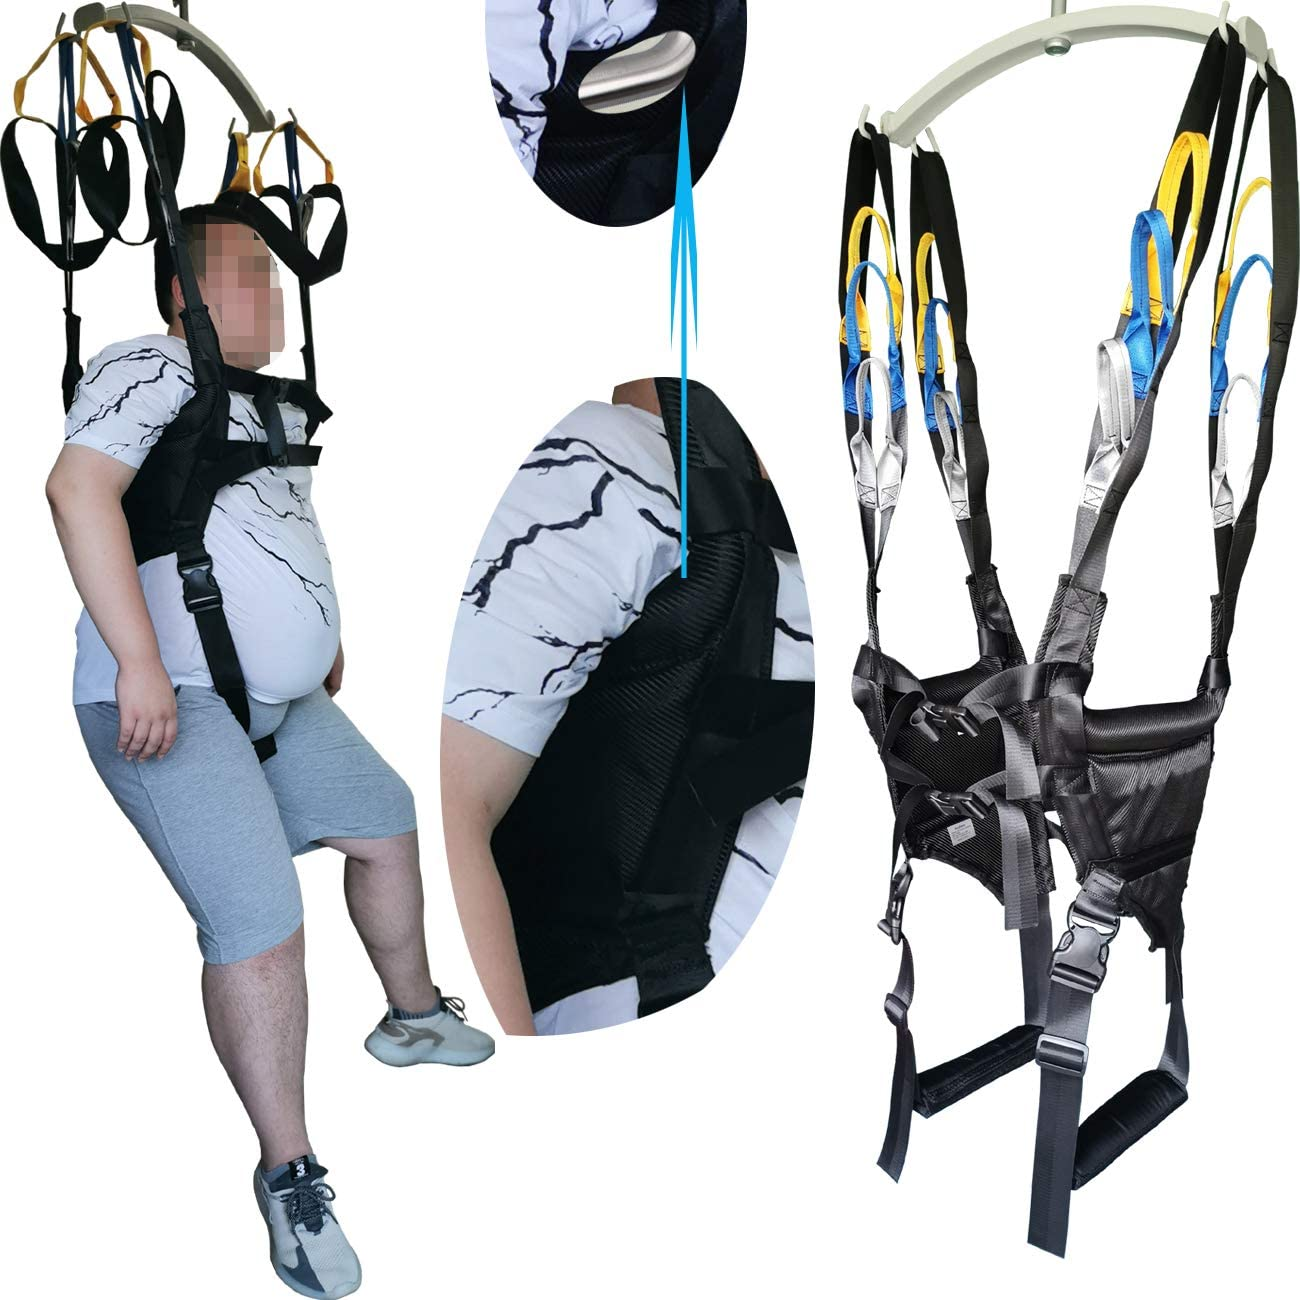 Patient Lift Sling Medical Standing Aid Walking Support Toileting Transfer Gait Belt Leg Exercisers Fold Up Invalid Elderly Full Body Adjustable Strap AidLot Black Free Size : Health & Household